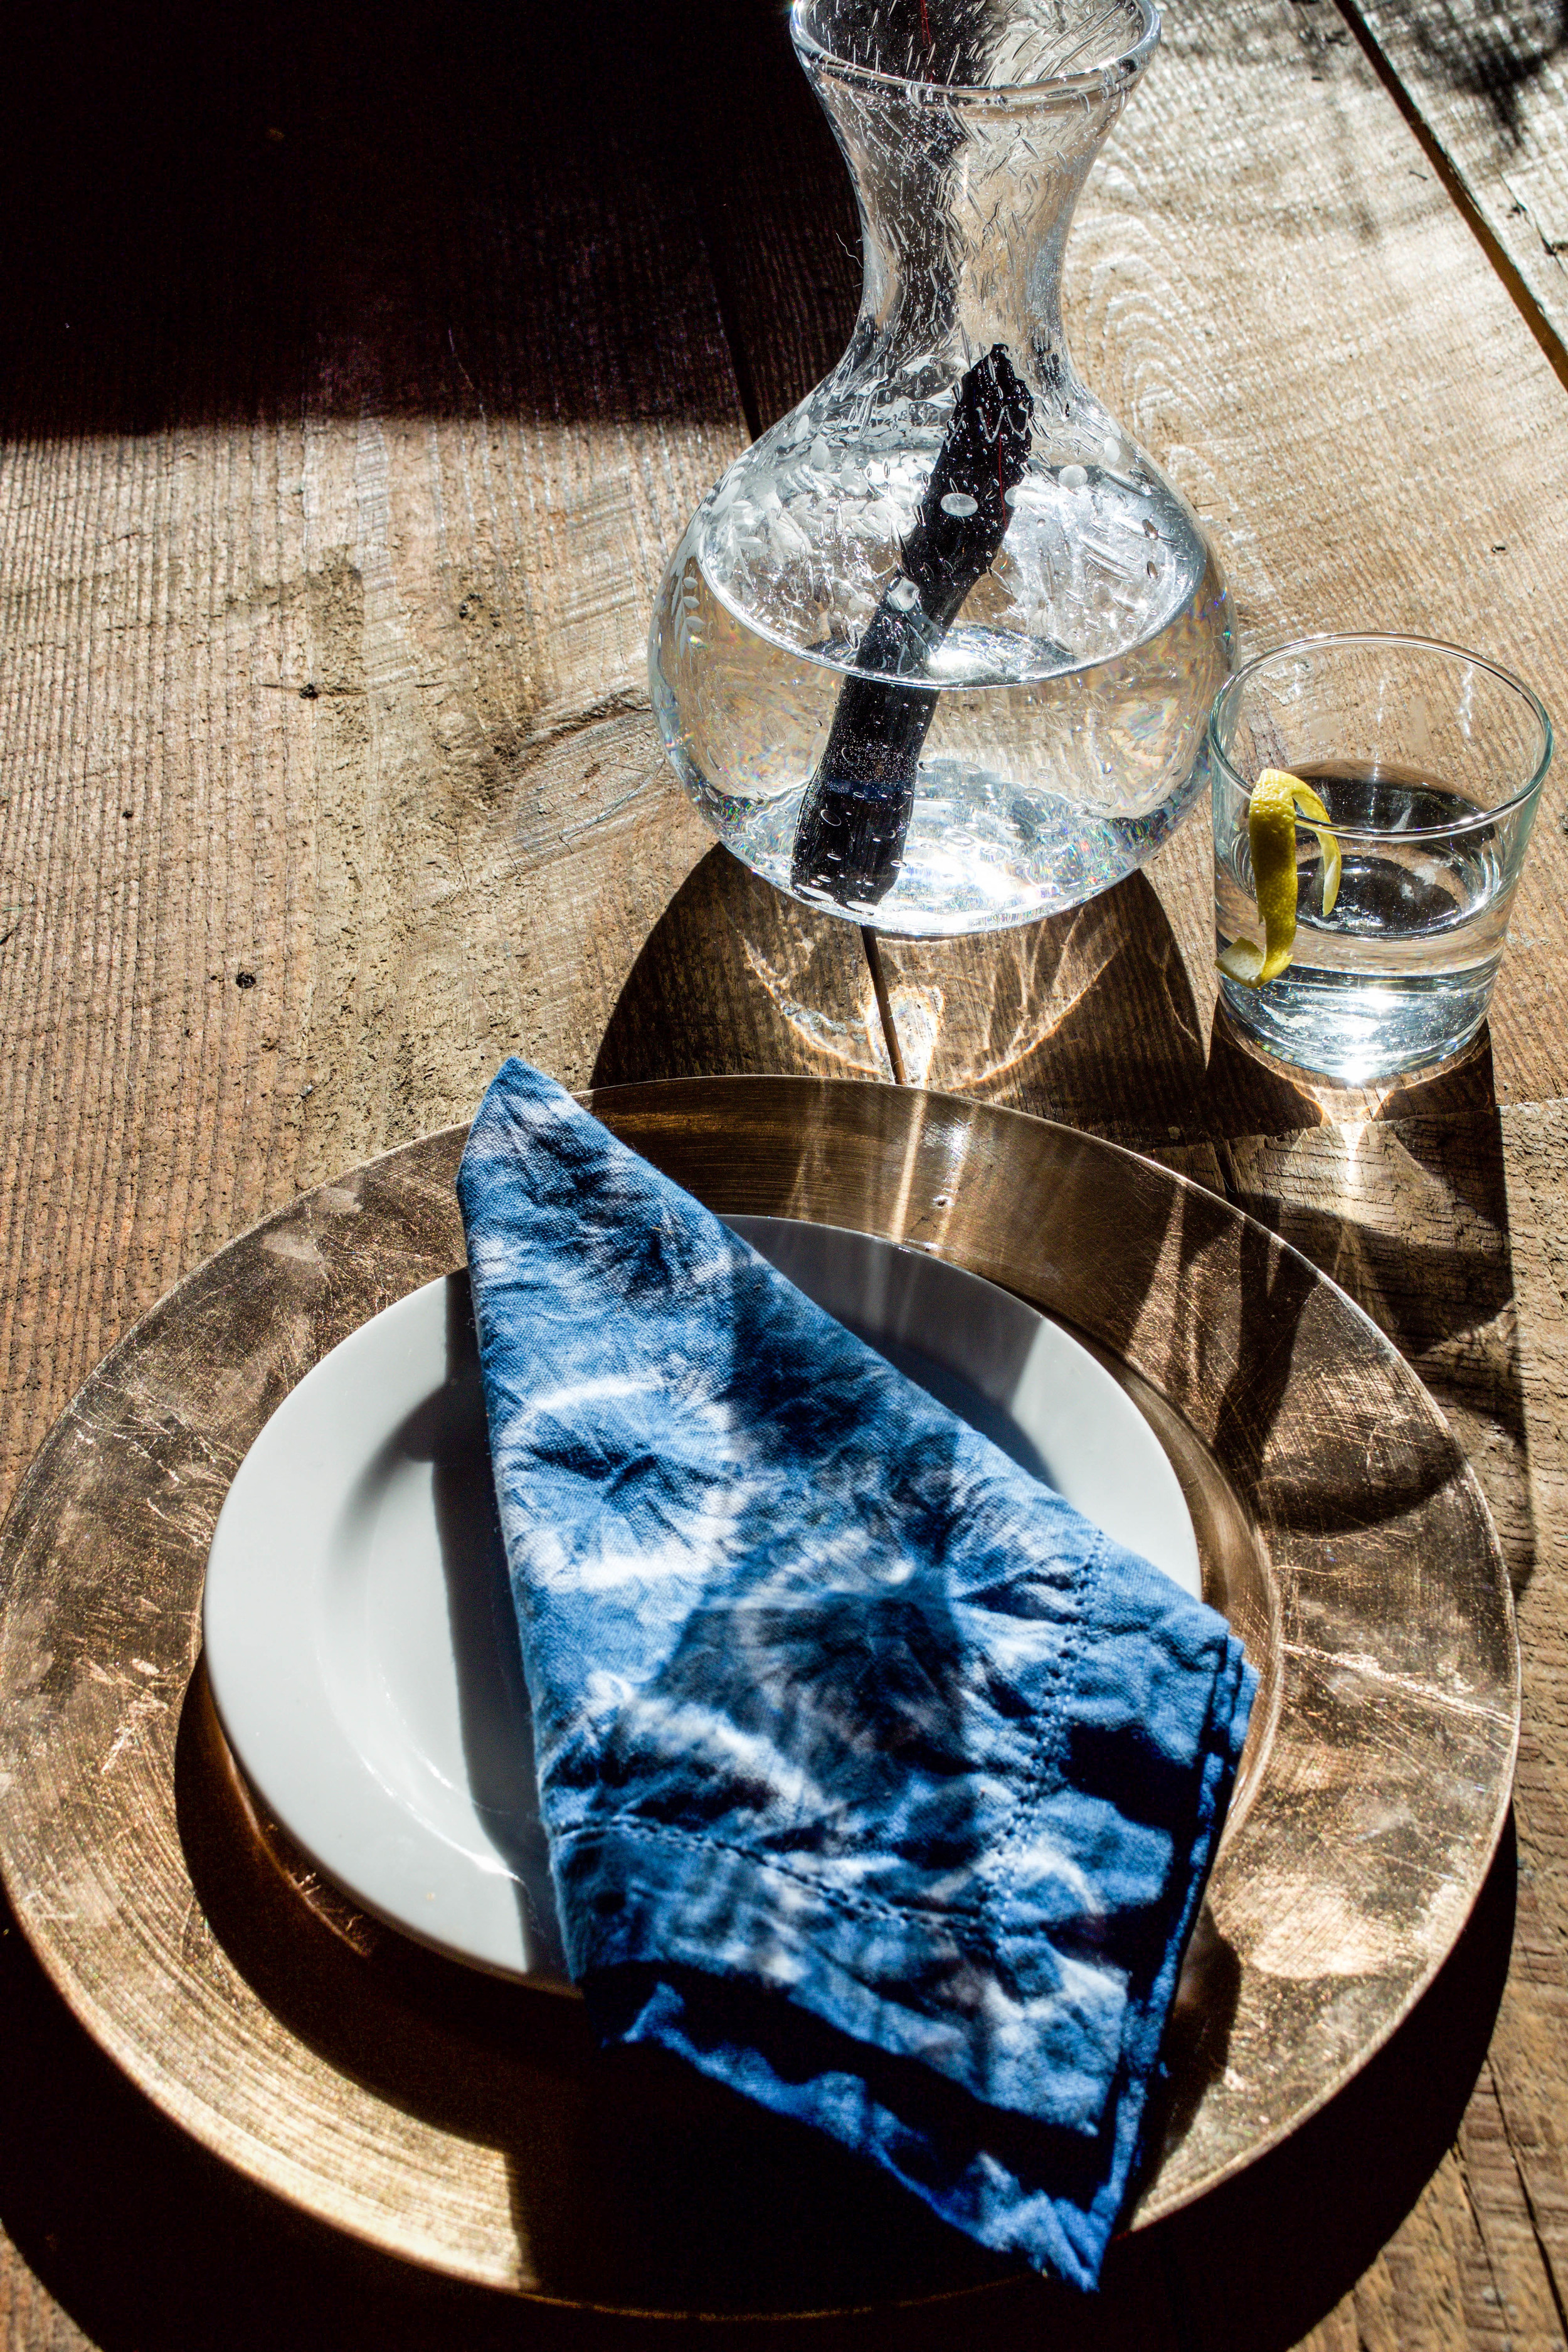 Hand dyed napkins with  Apprvl Dye Kit . Pitcher of purified water with Kishu Binchotan Charcoal.